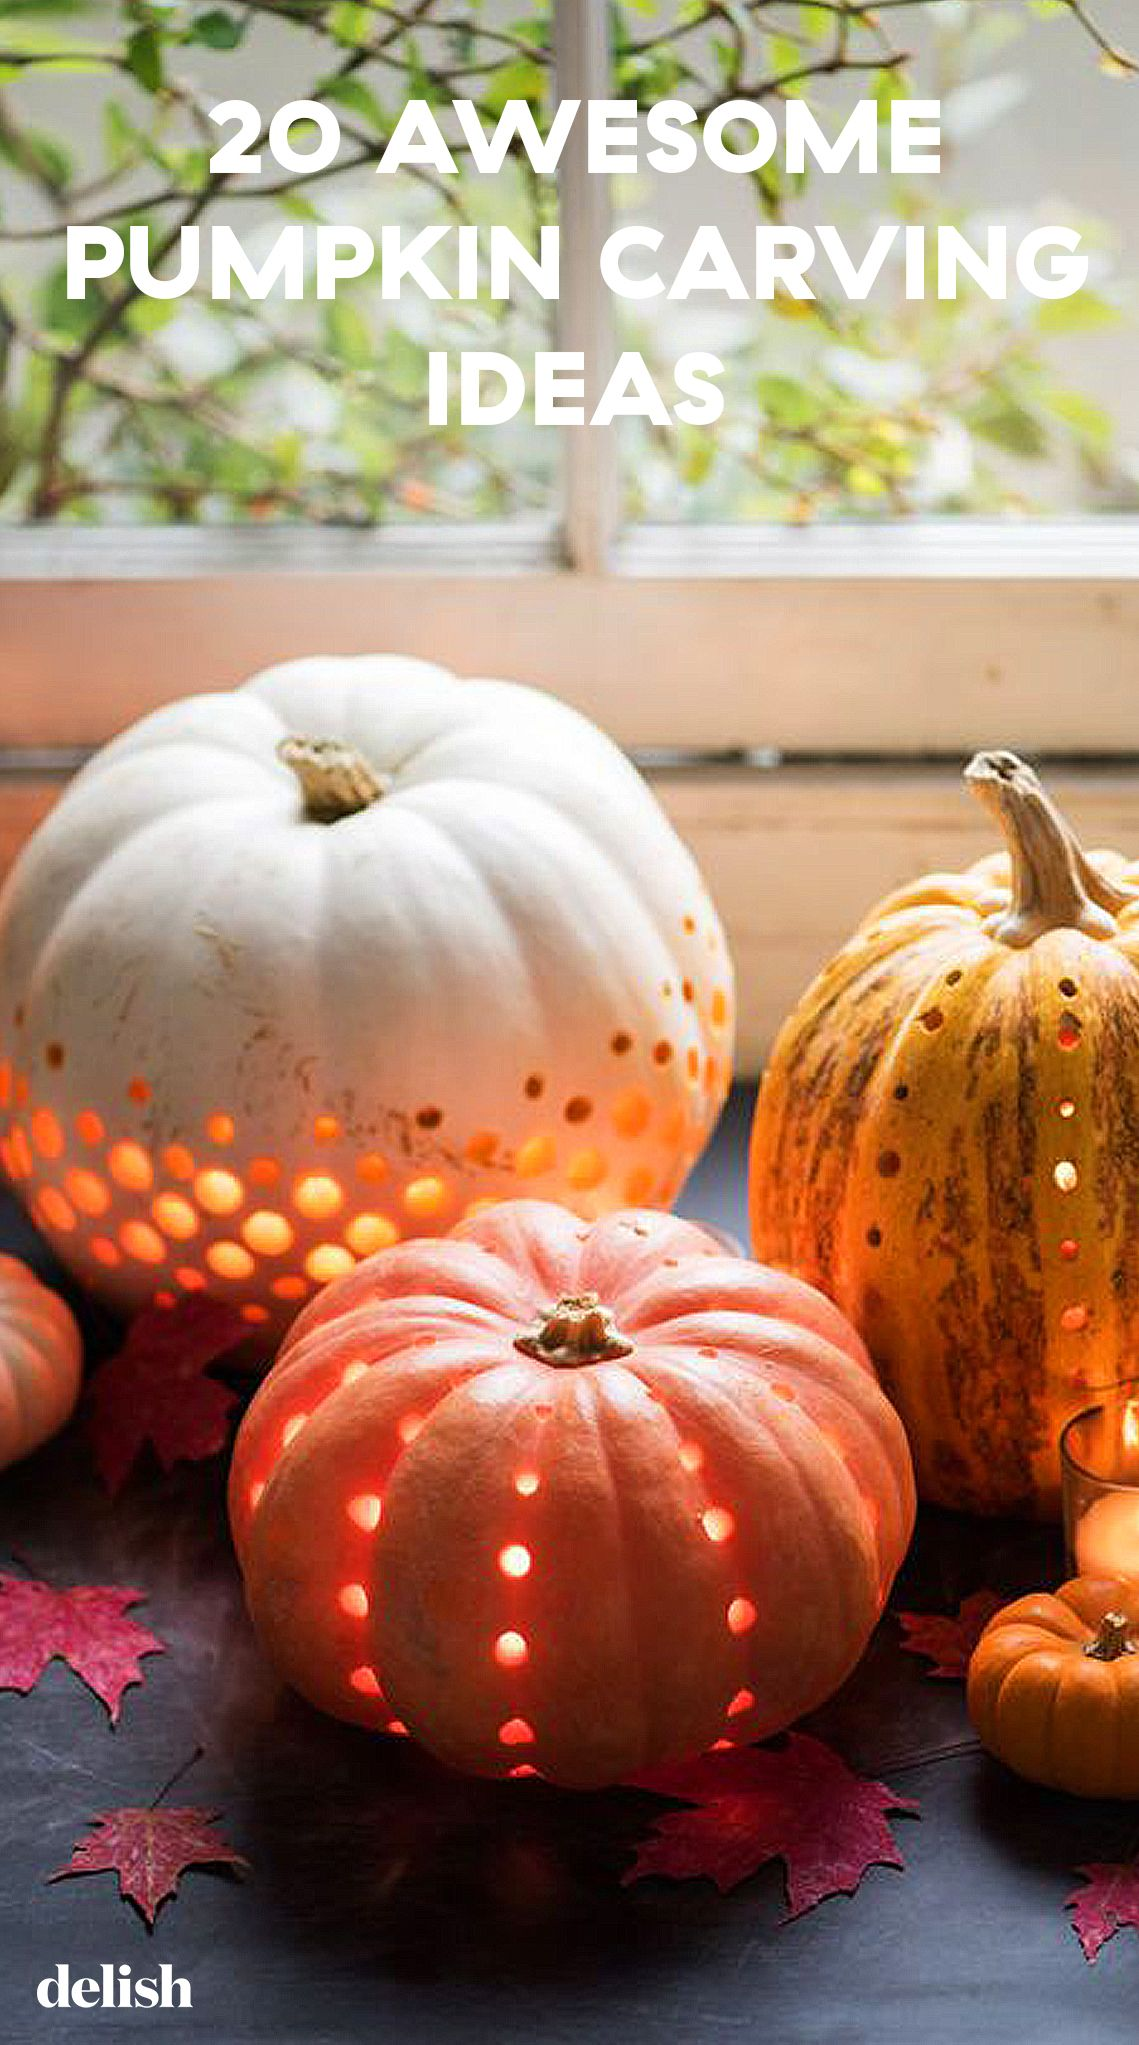 30 Creative Pumpkin Carving Ideas Awesome Jack O Lantern Designs Delish